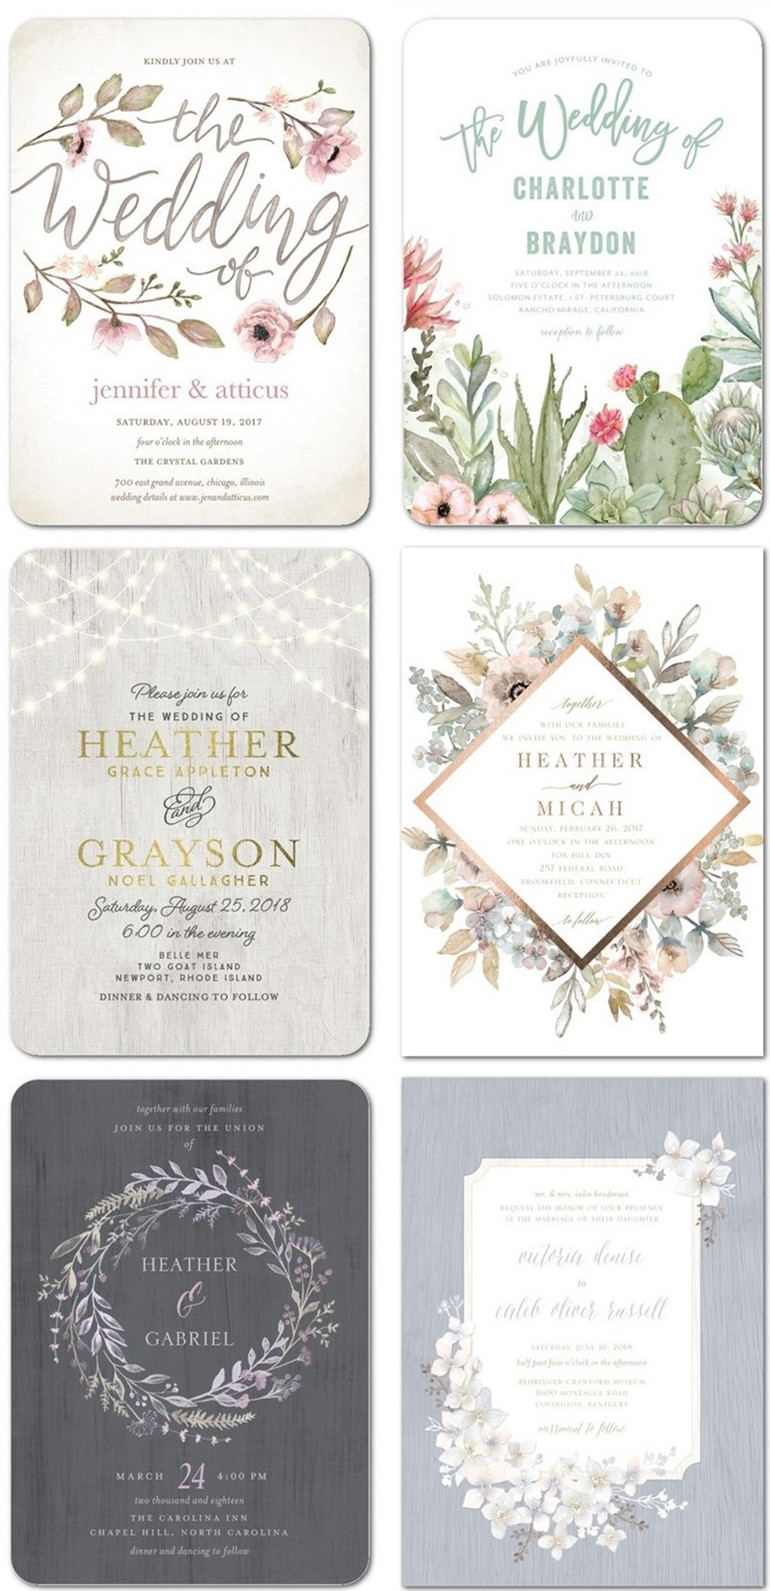 Rustic wedding invitations for your big day